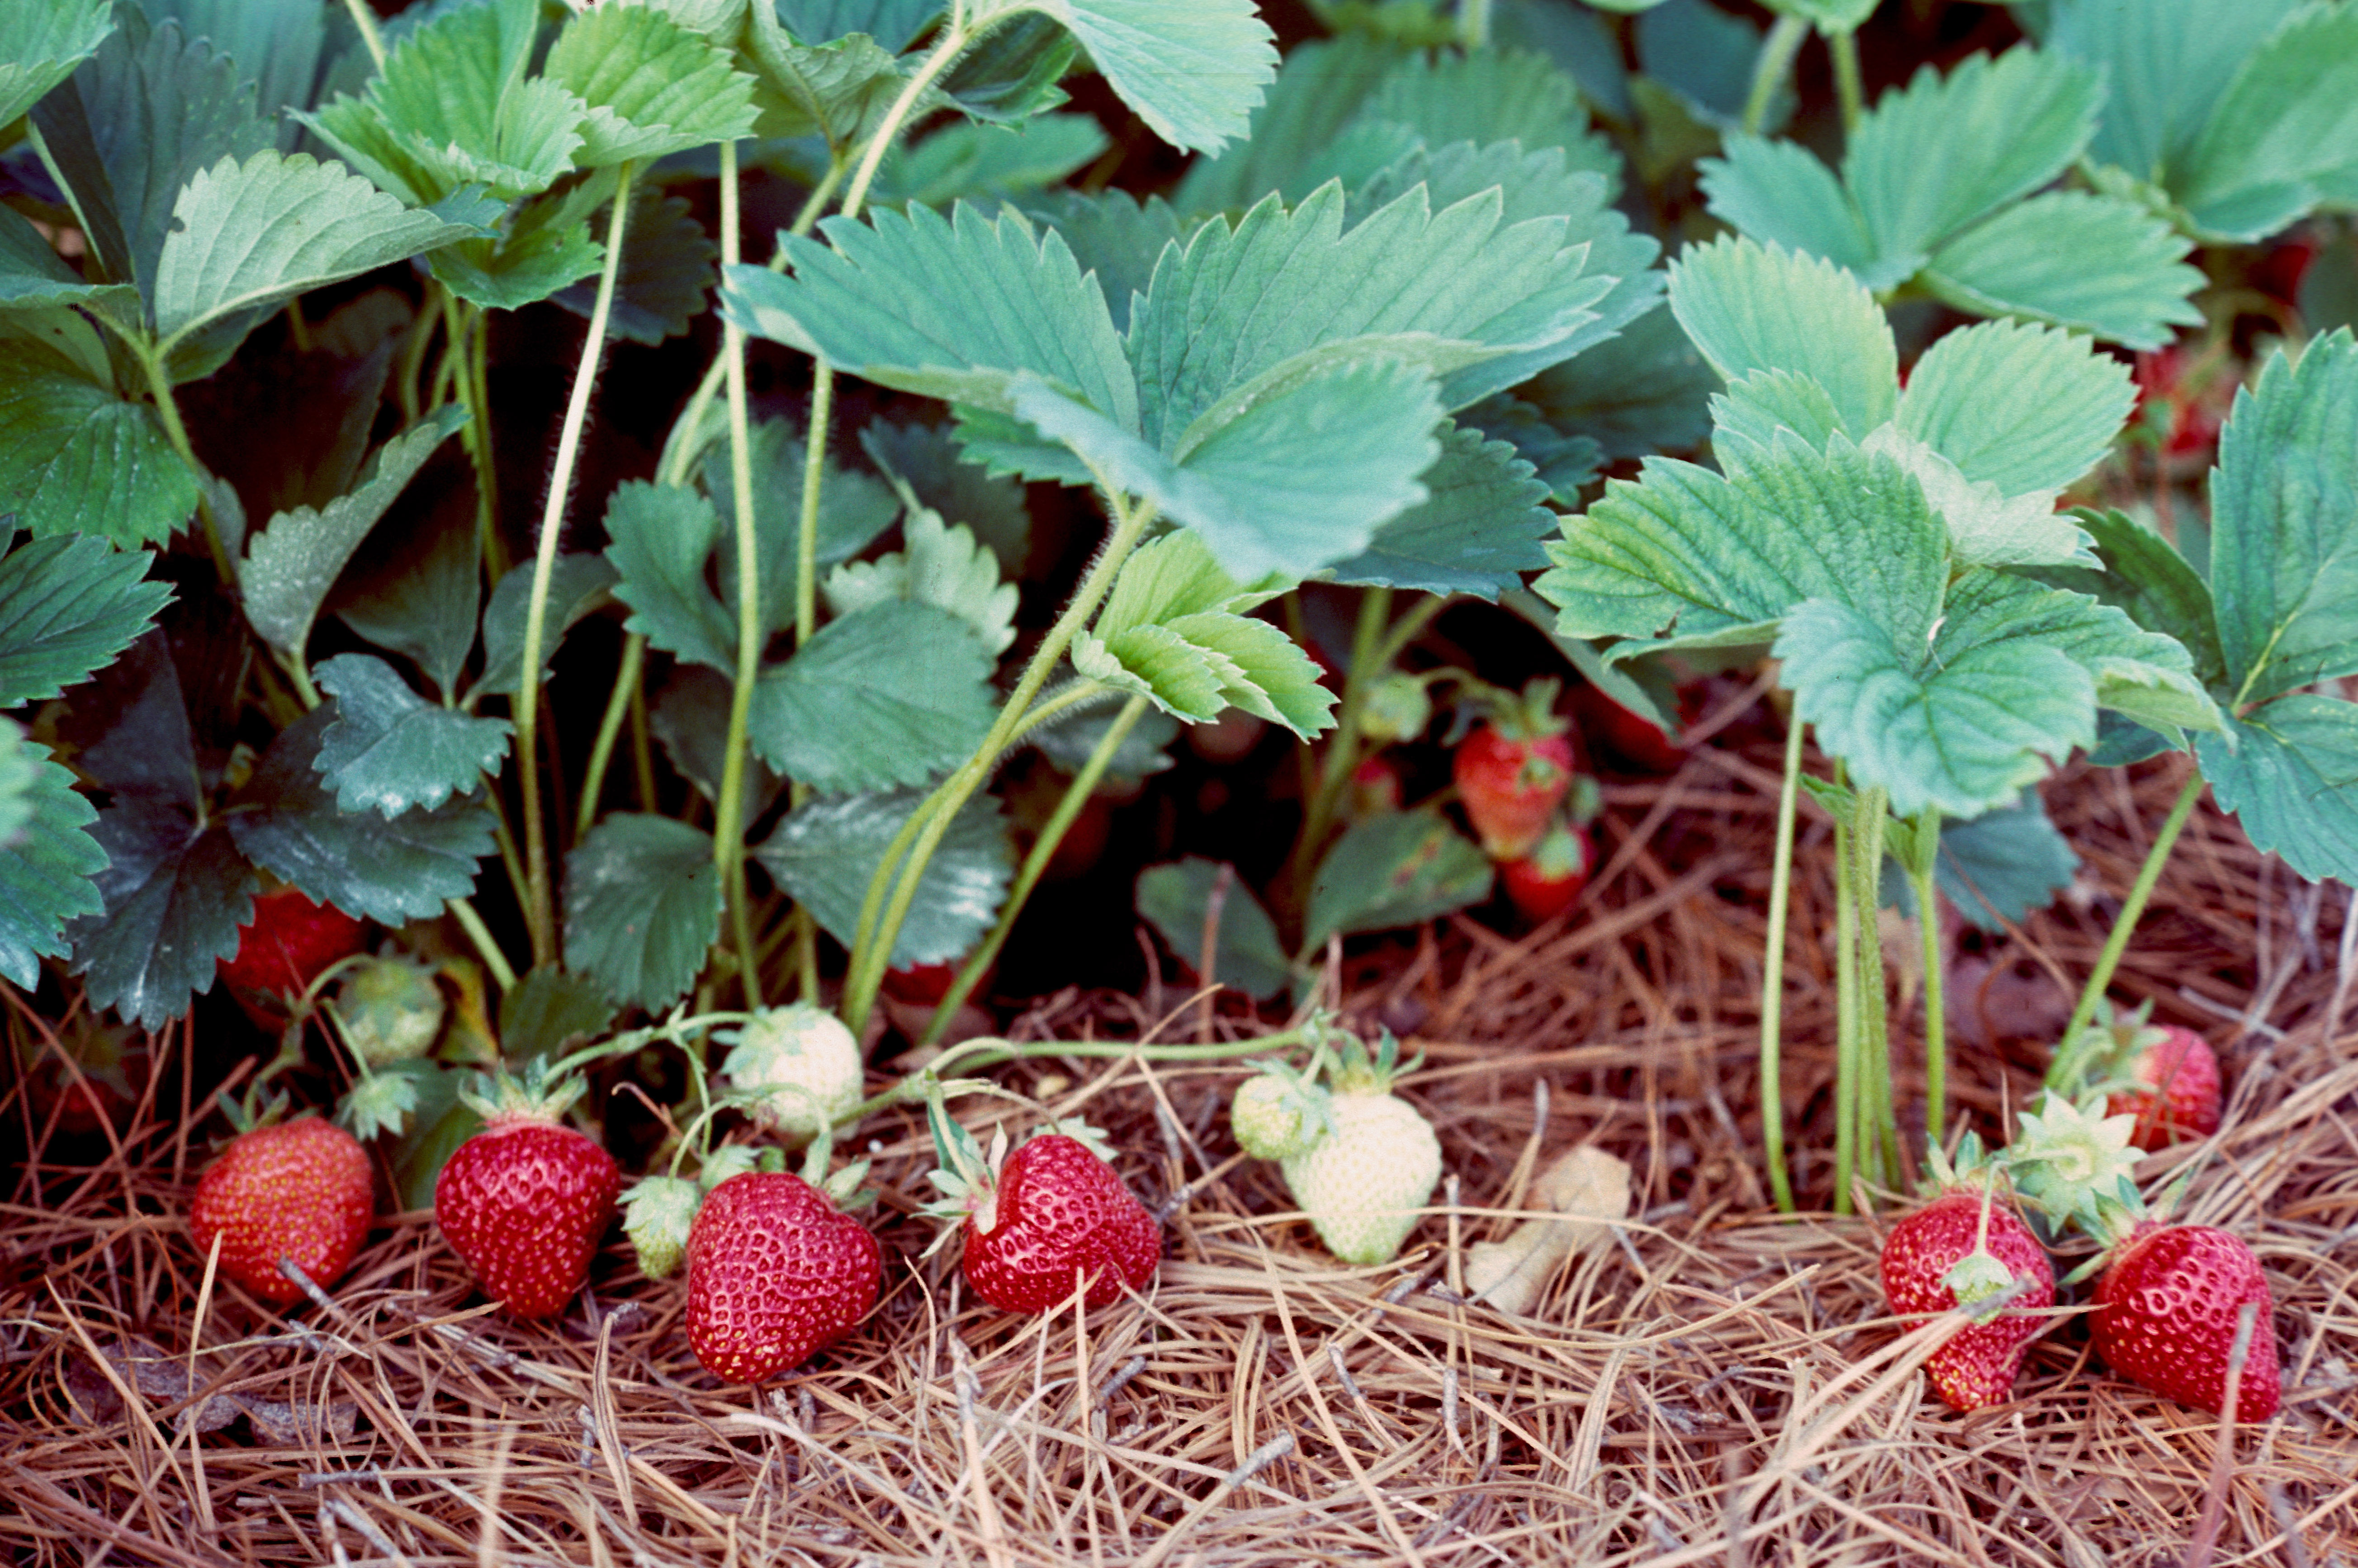 Strawberry plants with ripe strawberriesjpg